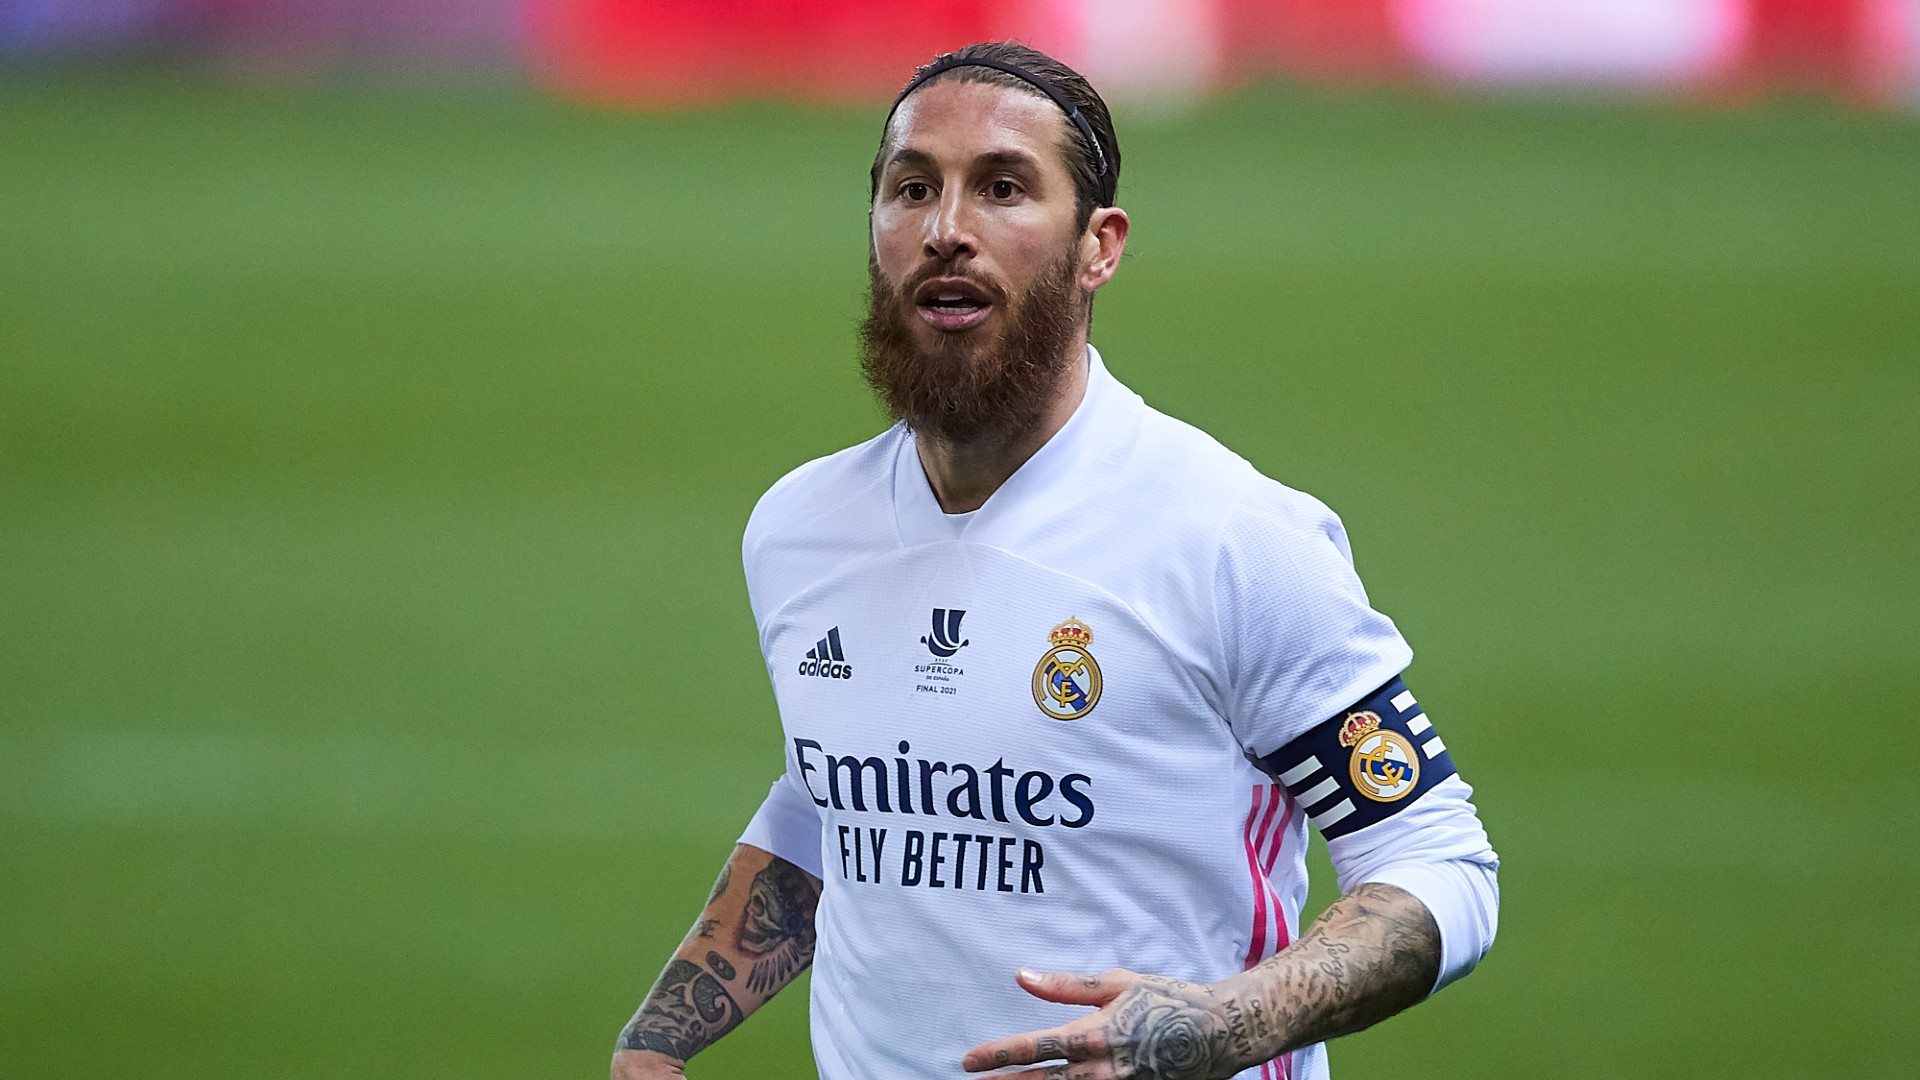 Rumour Has It: Man Utd to decide on move for Madrid captain Ramos